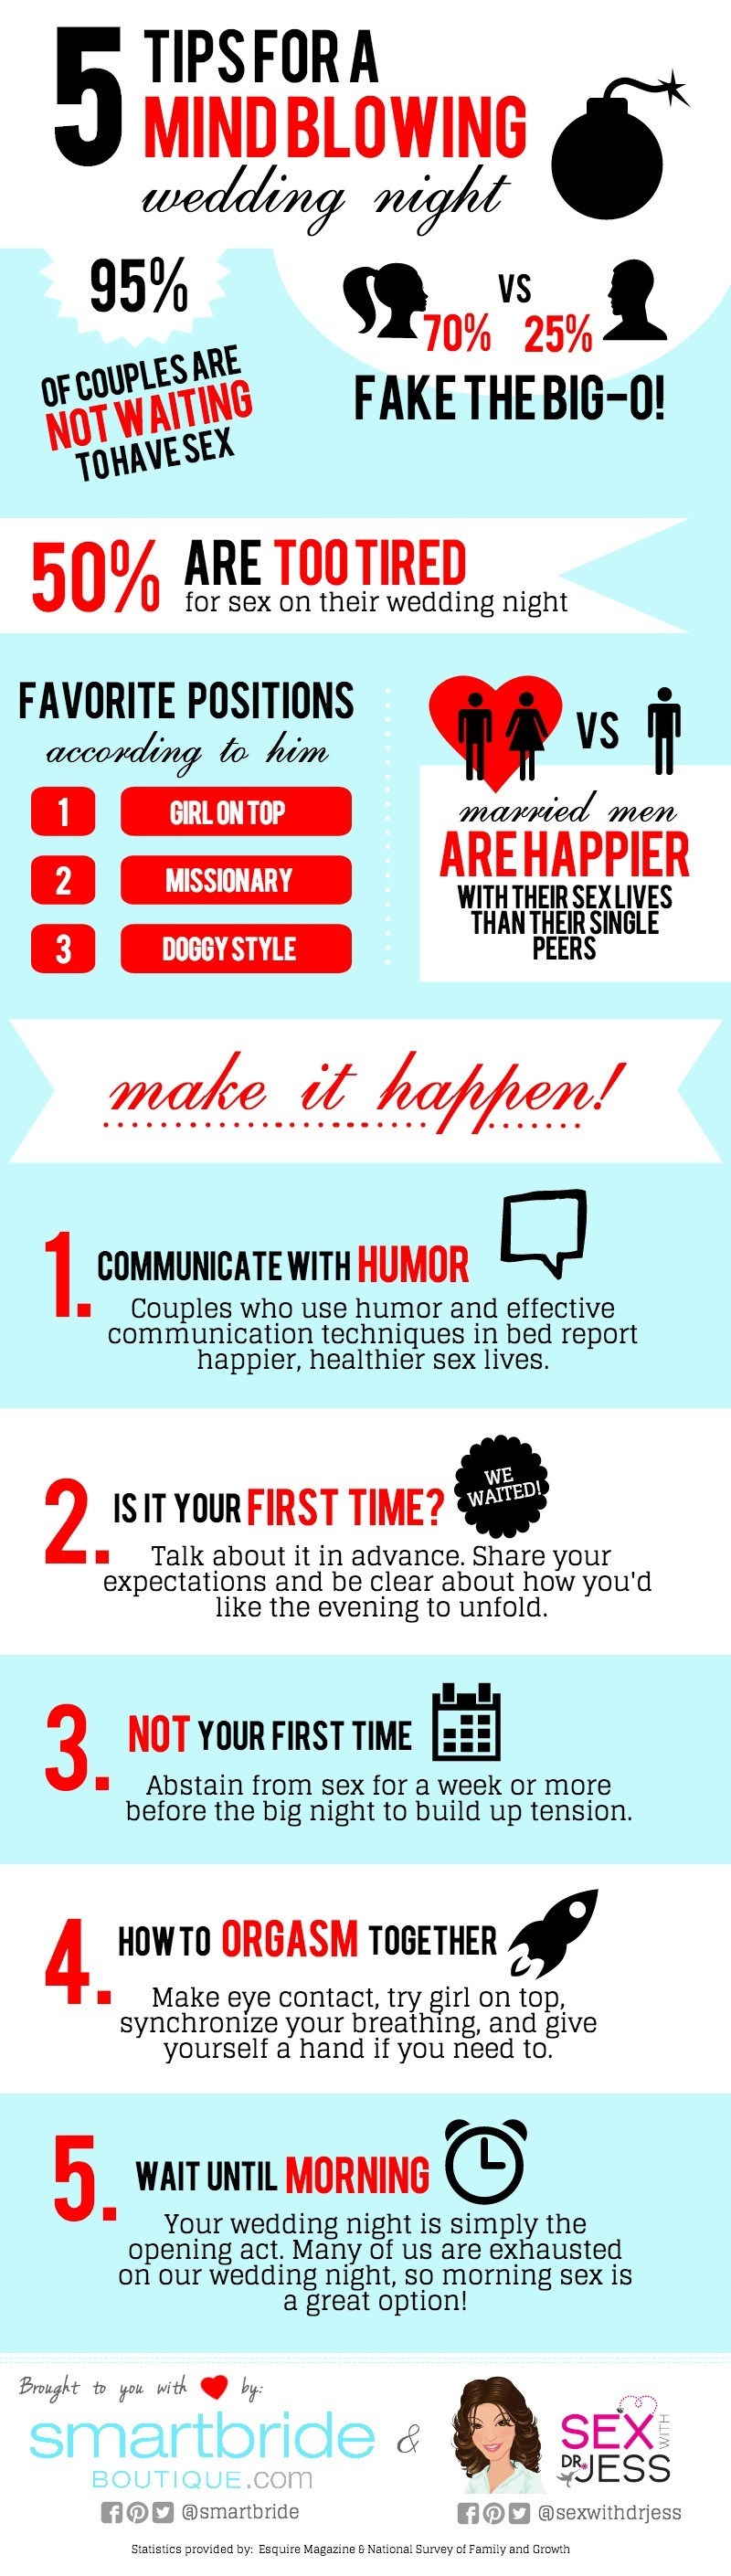 5 tips for a mind-blowing wedding night